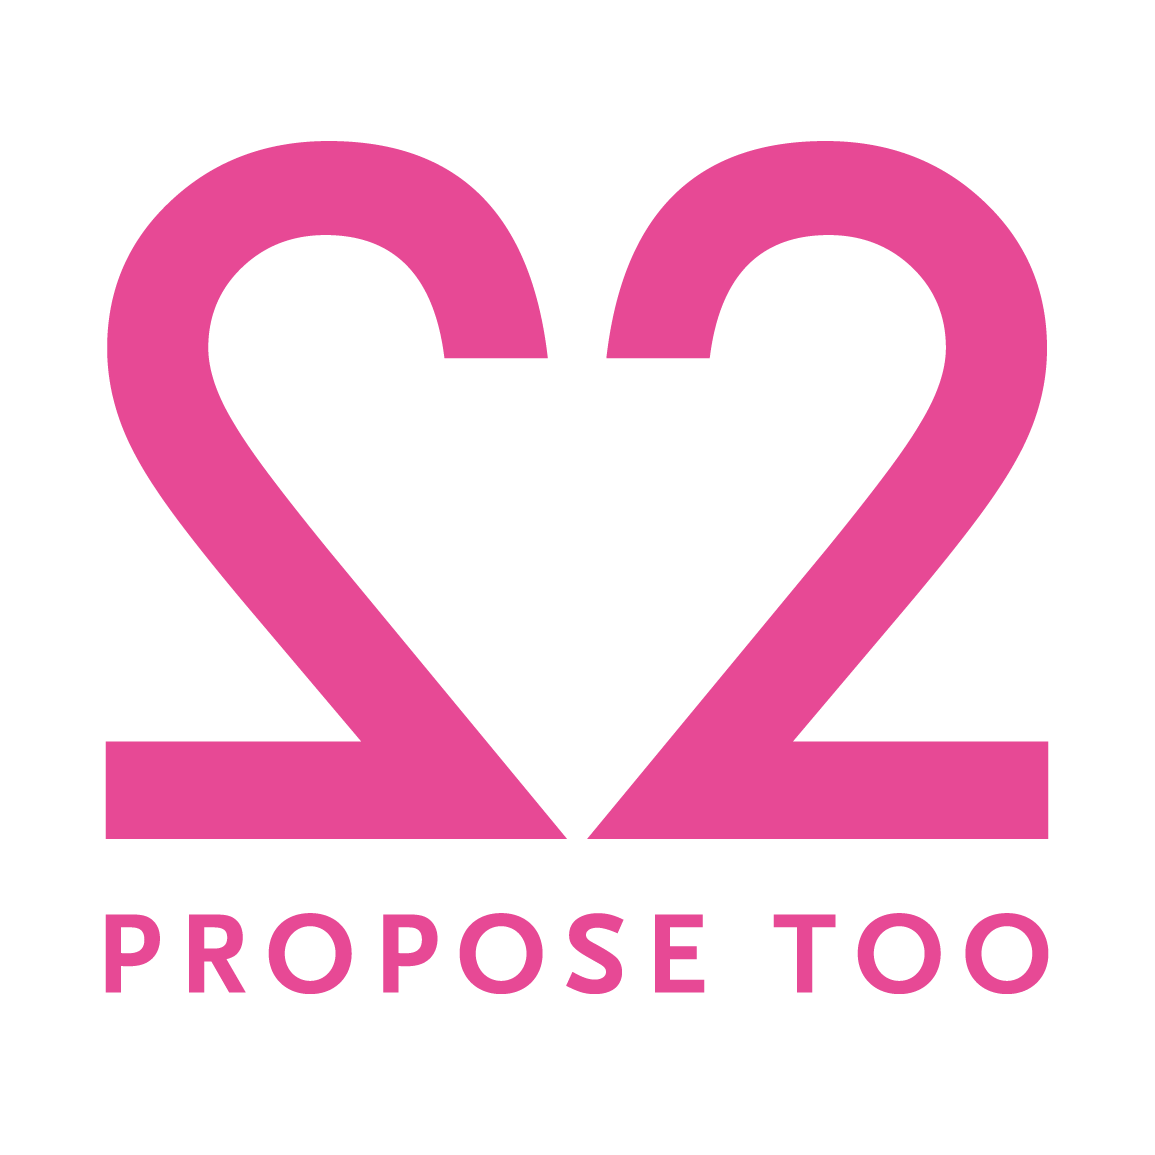 Propose_Too_Logo_Pink_w_Transparent_Bkg-02